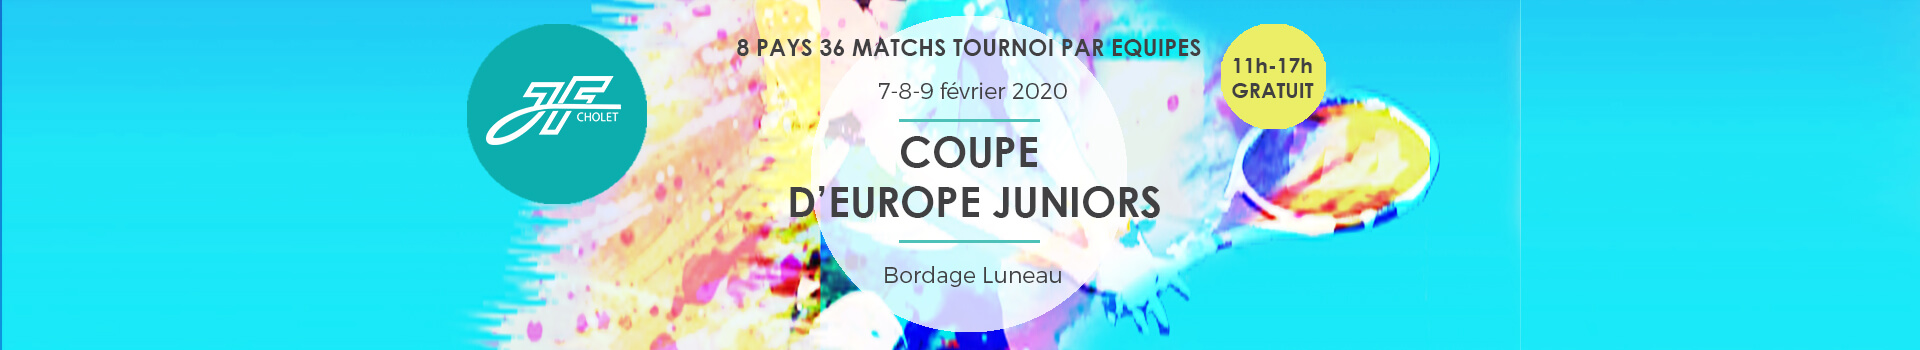 bandeau_evenement_WINTER-CUP2020